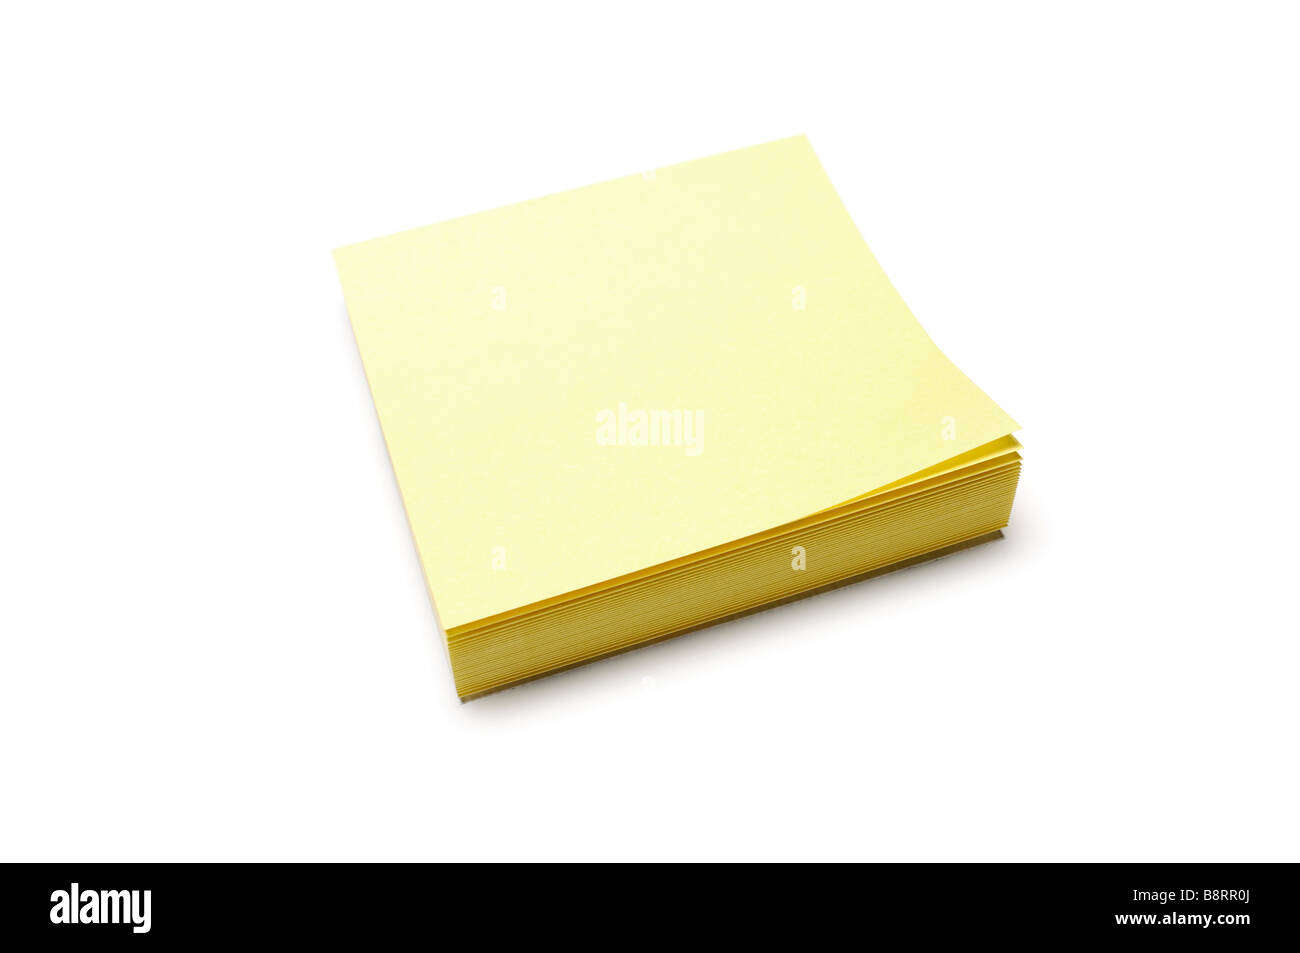 Adhesive Notes - Stock Image